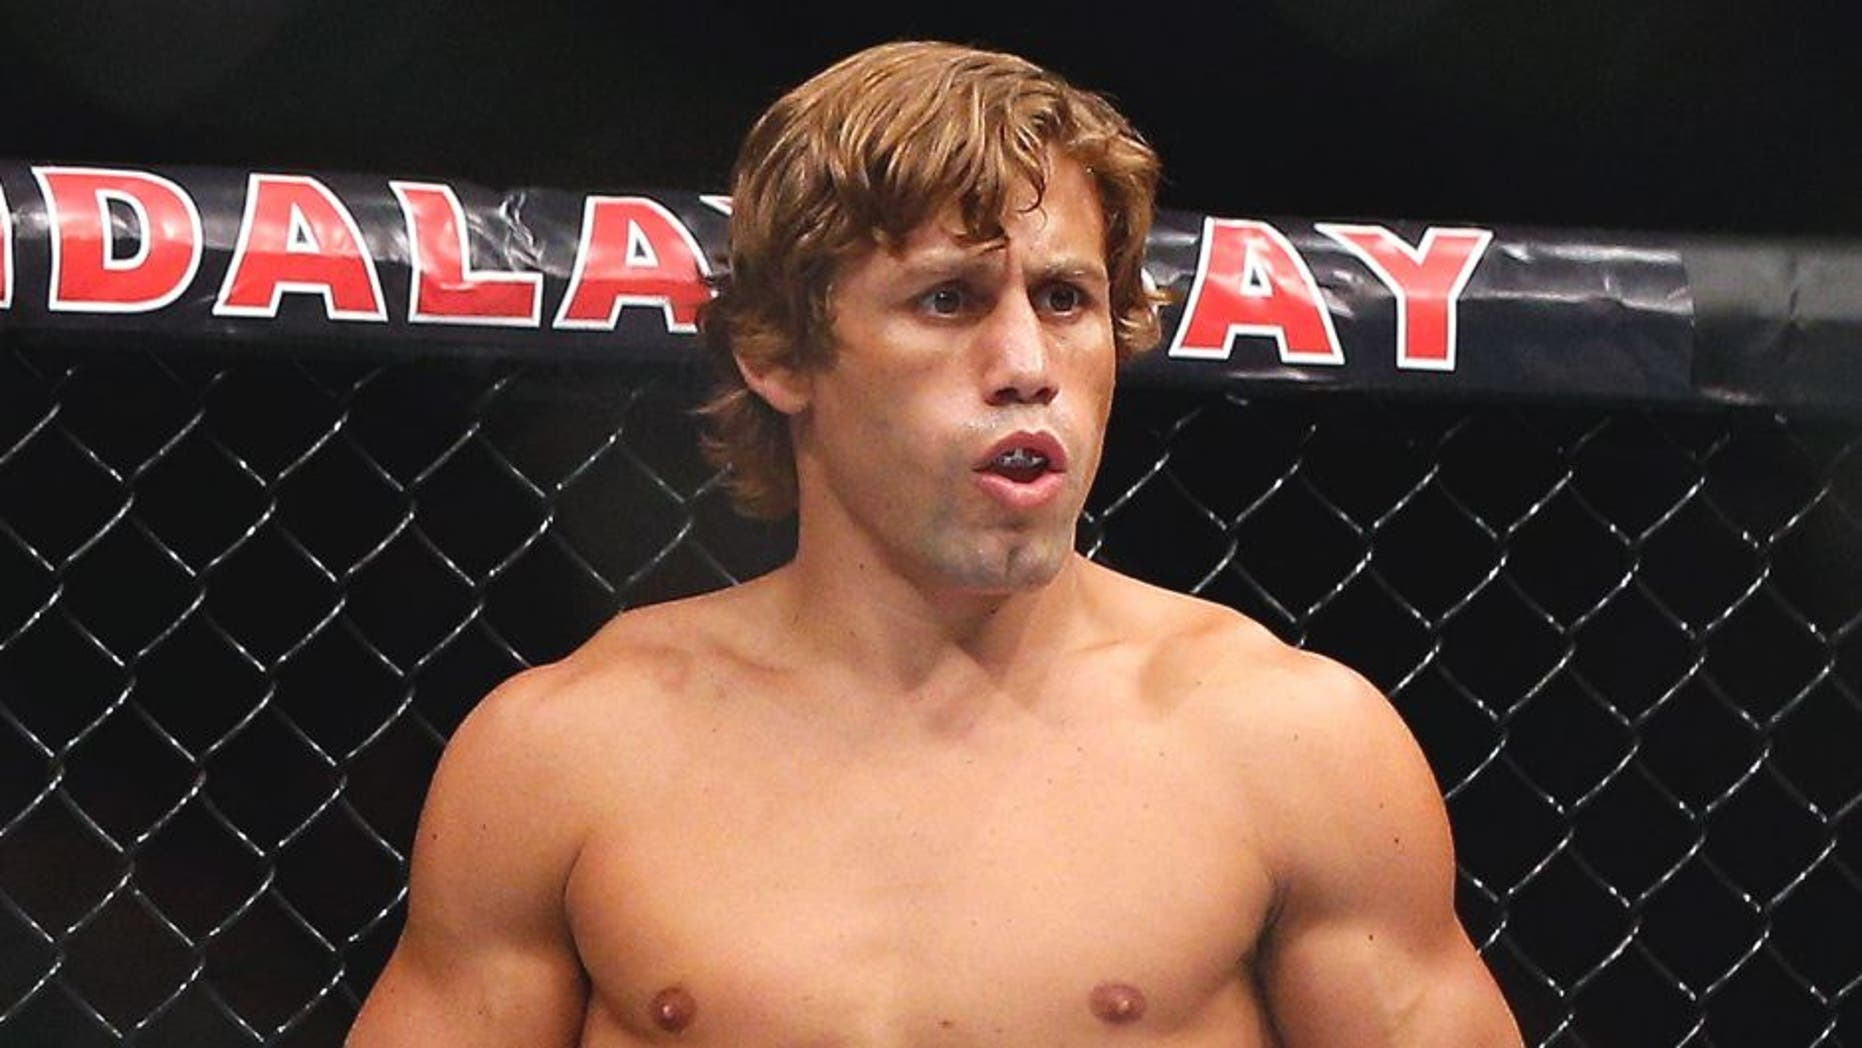 LAS VEGAS, NV - JULY 05: Urijah Faber prepares for his fight with Alex Caceres in their bantamweight fight at UFC 175 inside the Mandalay Bay Events Center on July 5, 2014 in Las Vegas, Nevada. (Photo by Josh Hedges/Zuffa LLC/Zuffa LLC via Getty Images)